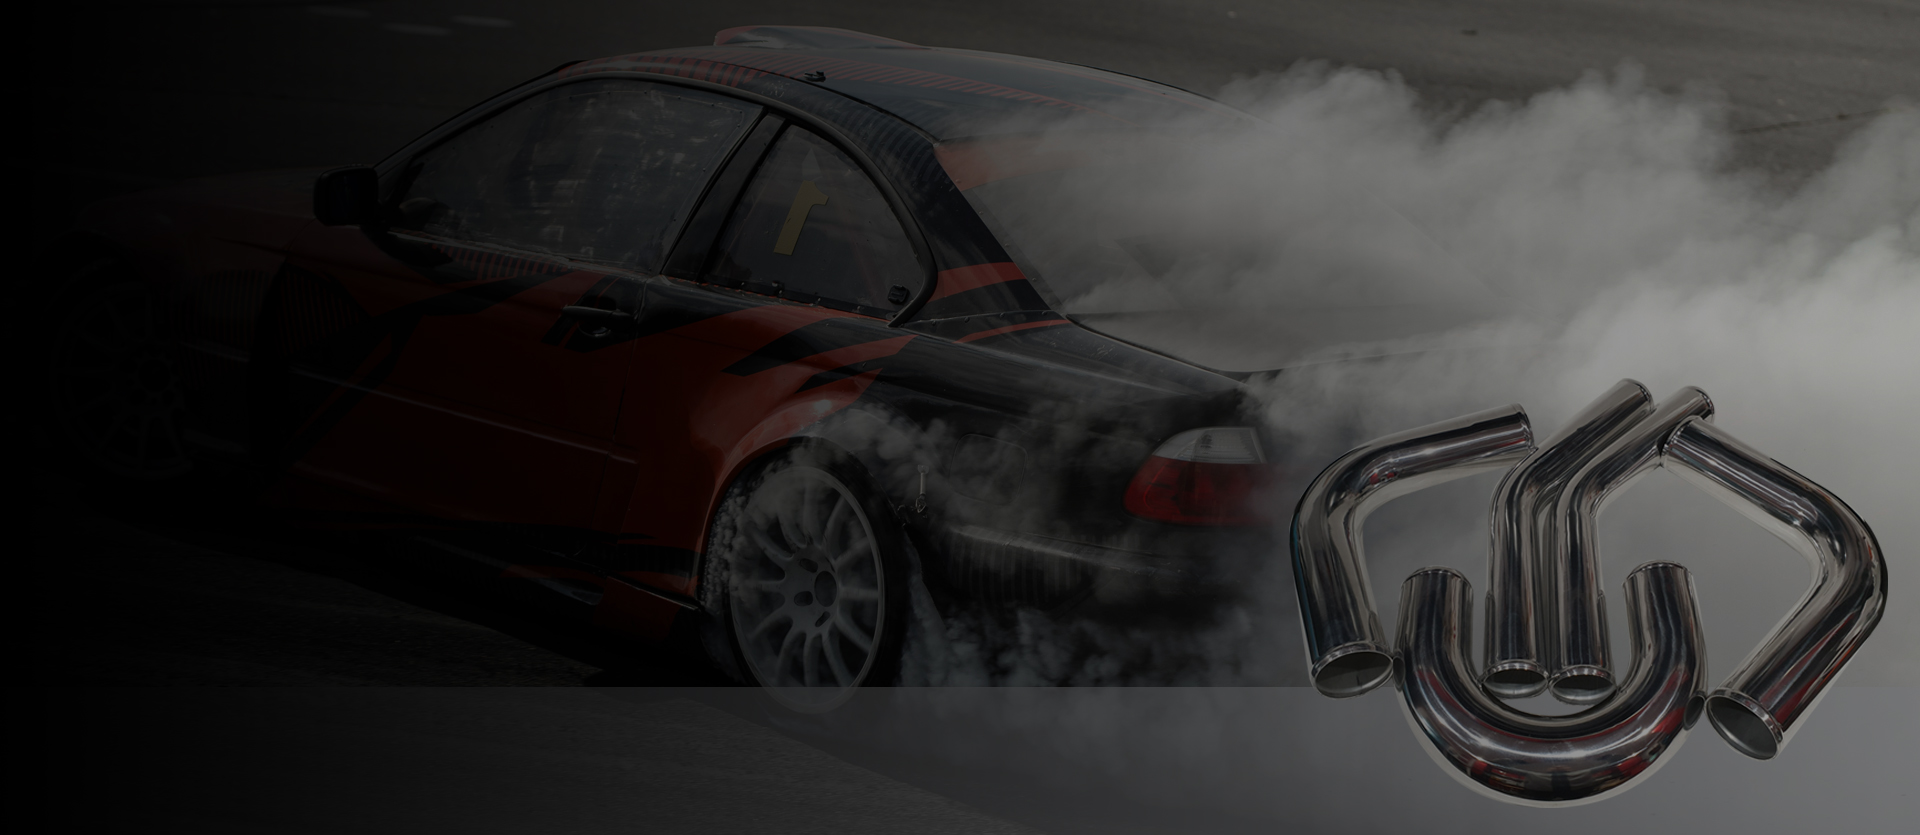 Vapor Racing - Slide 4 - Automotive and Performance parts, Intercoolers and Oilcoolers